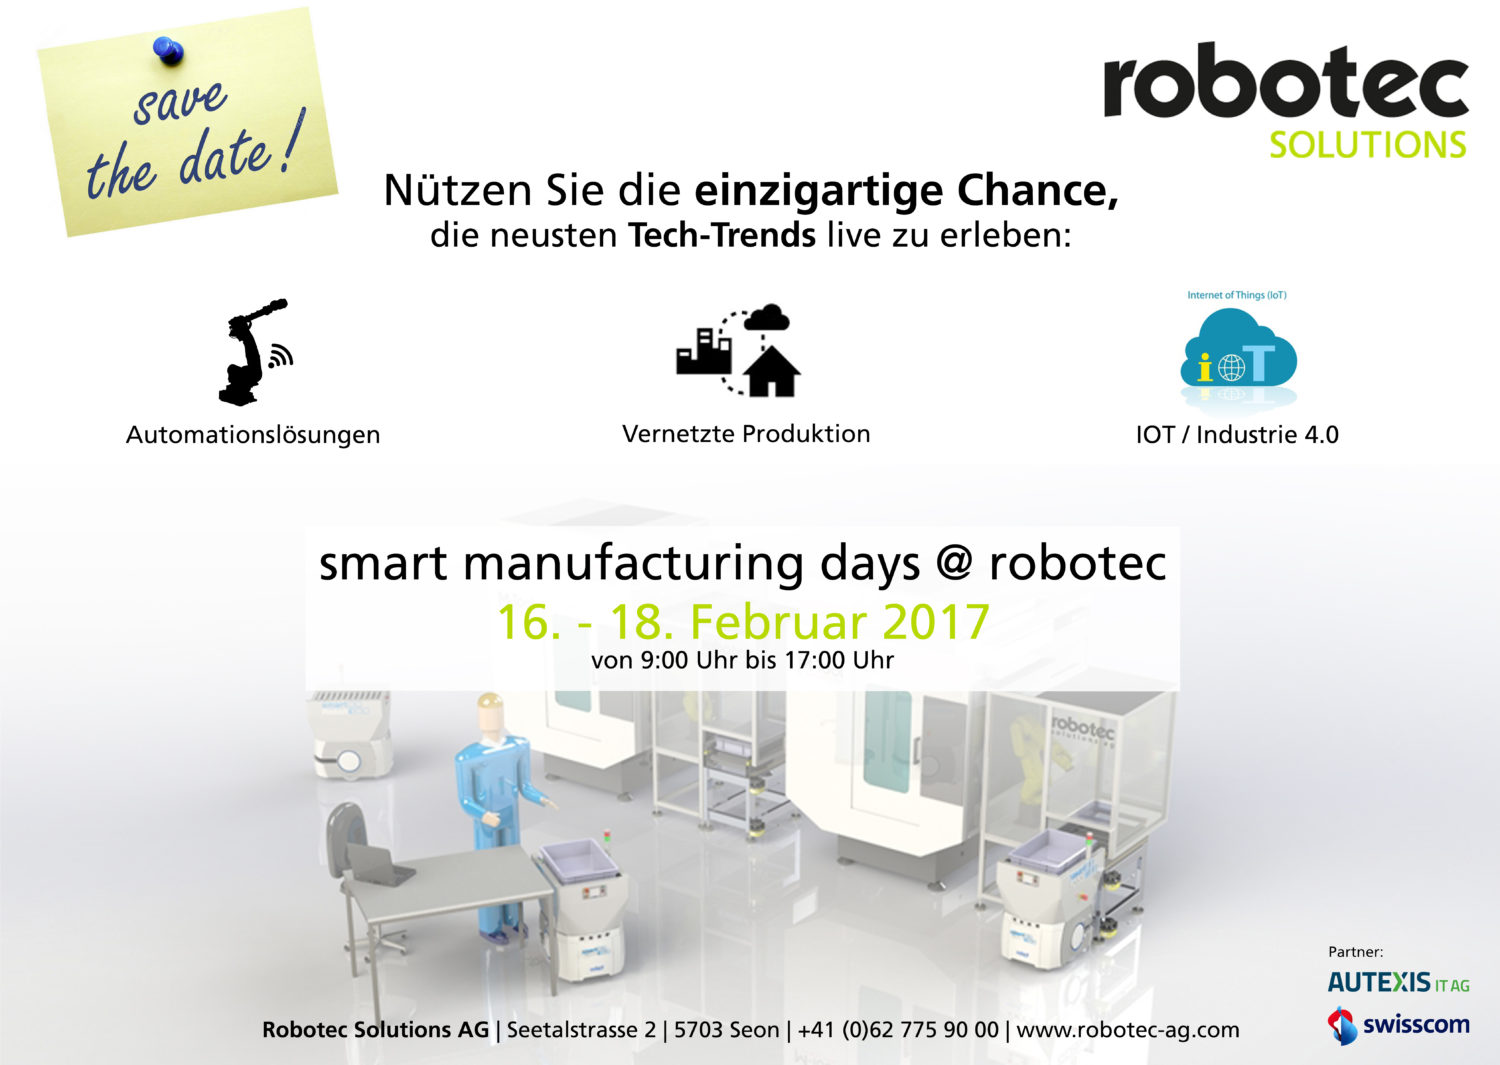 Autexis ist an den smart manufacturing days @ robotec